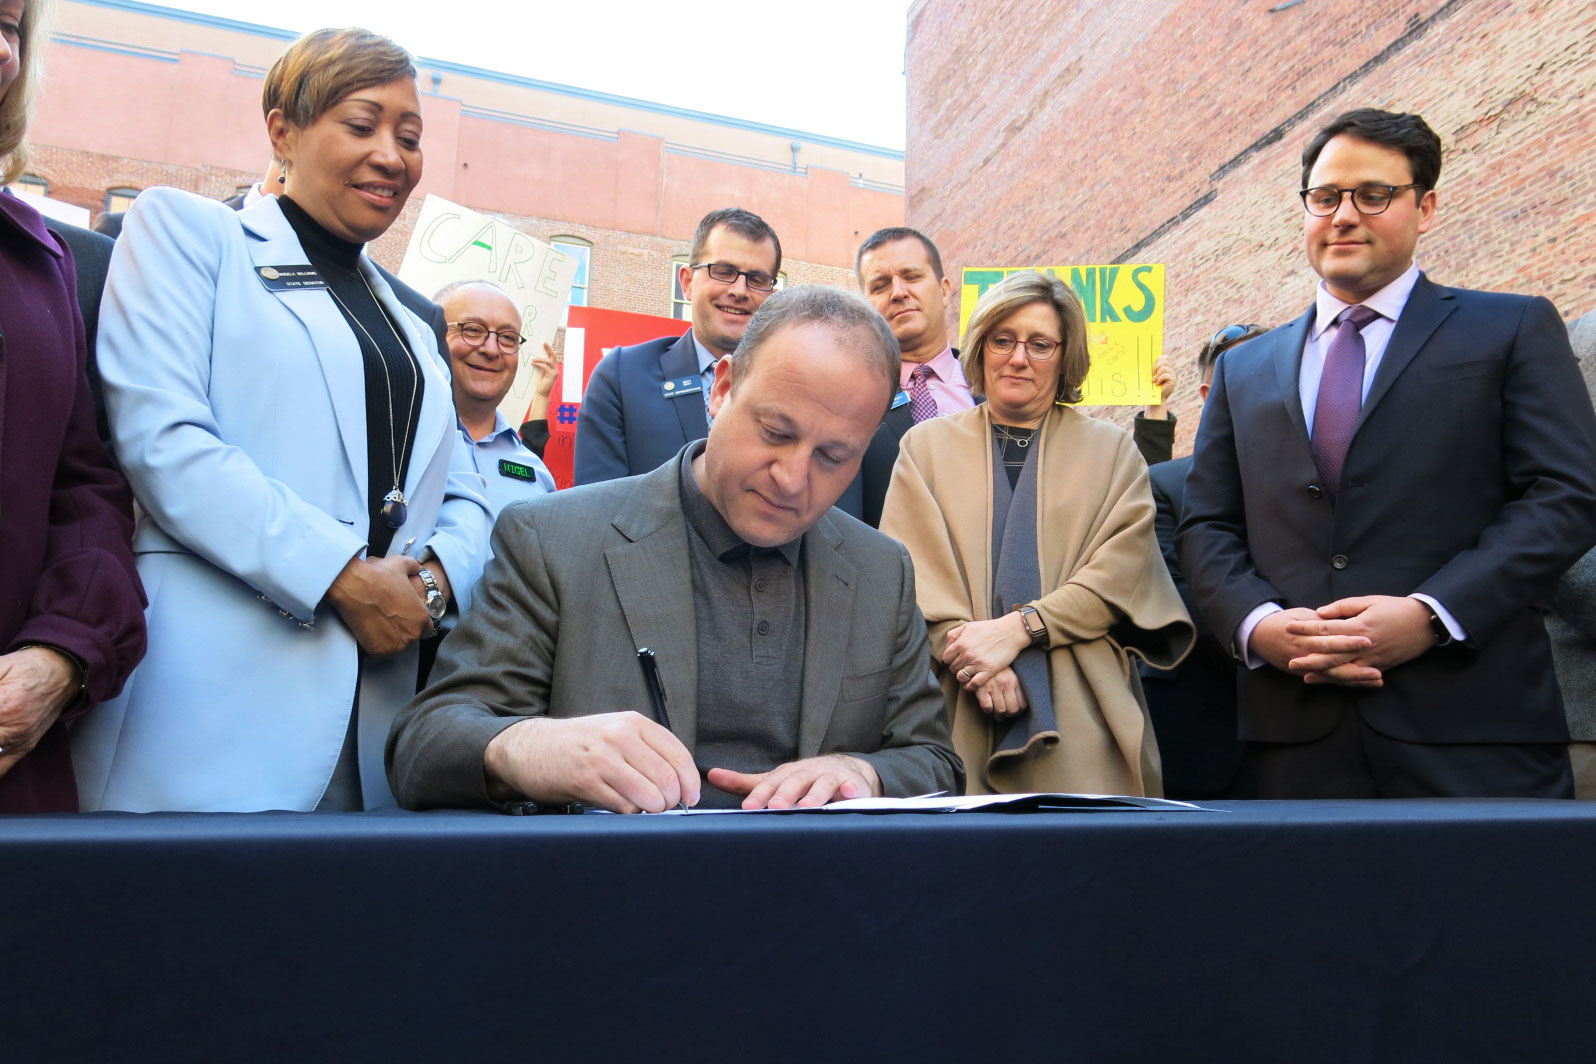 <p>Gov. Jared Polis signs his first environmental executive order on Thursday, Jan. 17, 2019, to put more electric cars and buses on the road. He's flanked by state representatives and leaders of environmental groups.</p>